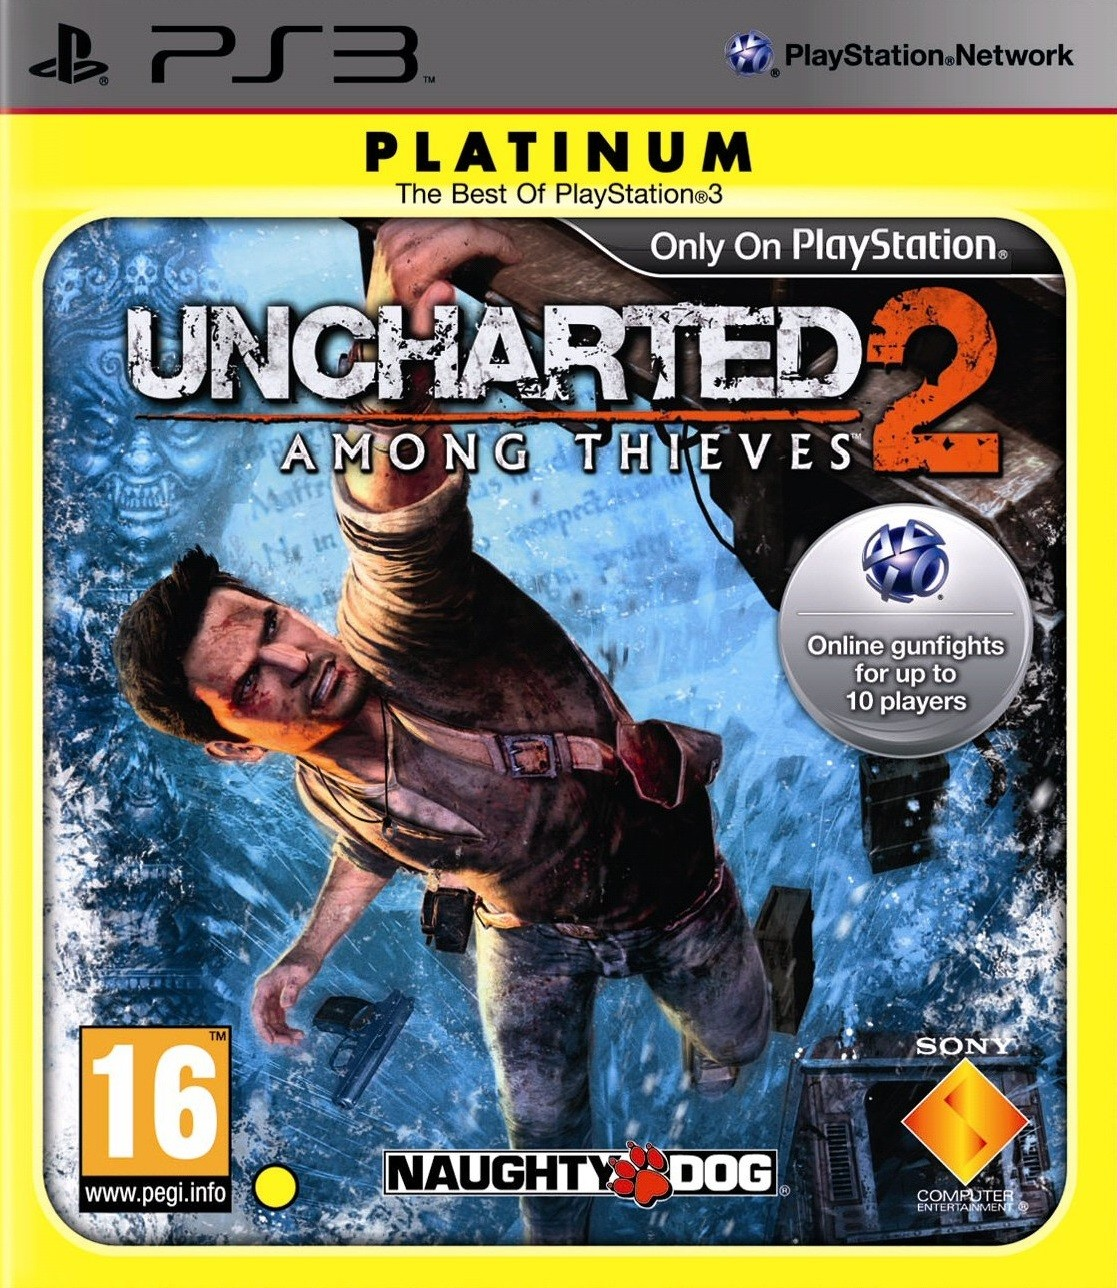 Uncharted 2 Among Thieves Platinum | Uncharted 2 Серед крадіїв б/в PS3